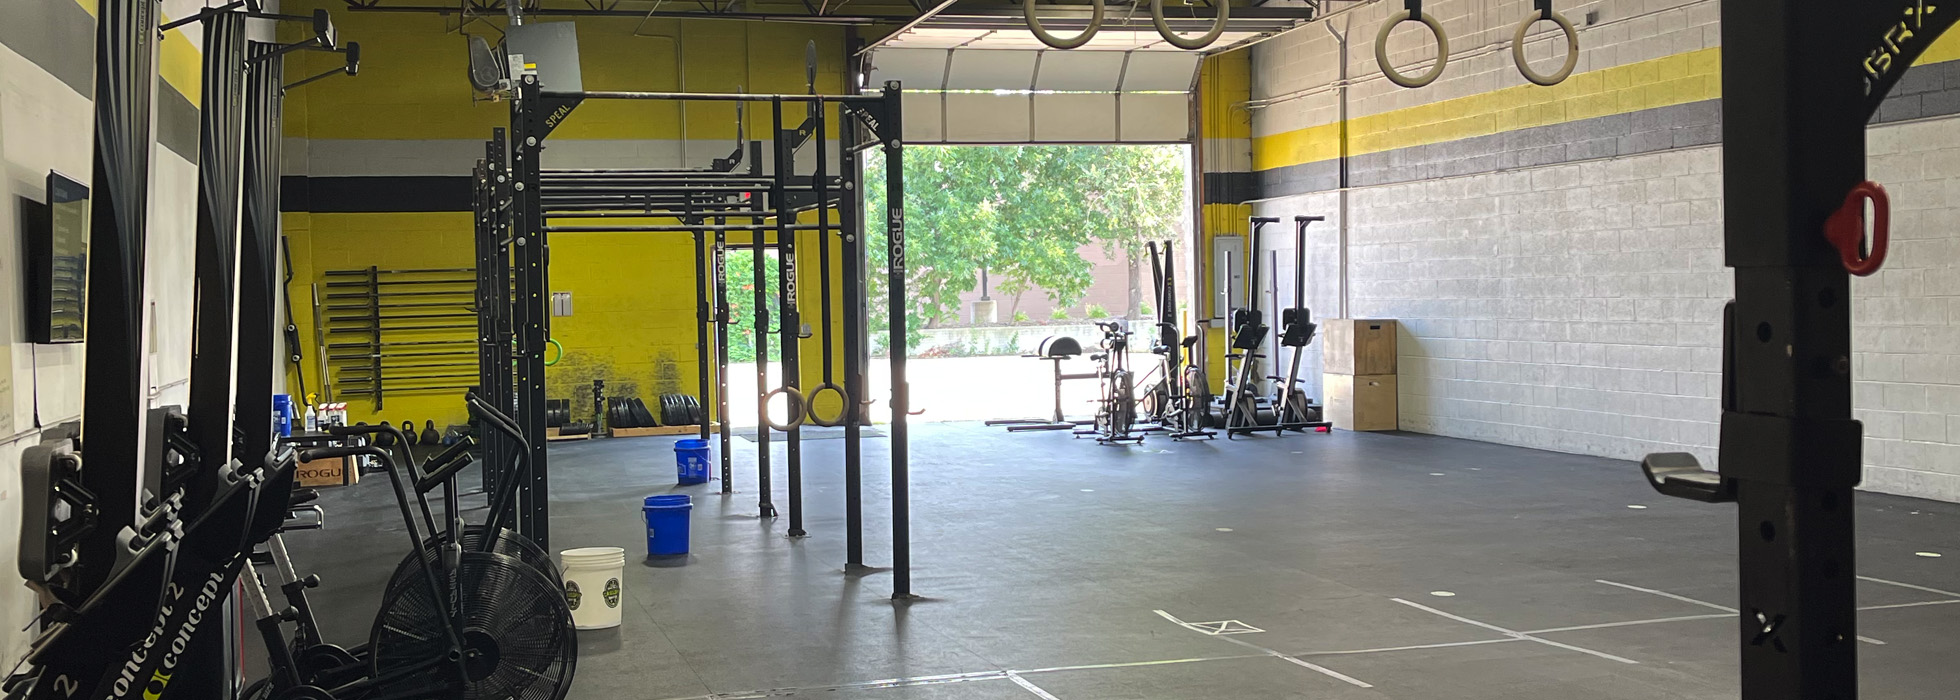 A Gym near Royal Oak, MI That Can Help With Weight loss & Dieting, A Gym near Berkley, MI That Can Help With Weight loss & Dieting, A Gym near Ferndale, MI That Can Help With Weight loss & Dieting, A Gym near Birmingham, MI That Can Help With Weight loss & Dieting, A Gym near Troy, MI That Can Help With Weight loss & Dieting, A Gym near Hazel Park, MI That Can Help With Weight loss & Dieting, A Gym near Oak Park, MI That Can Help With Weight loss & Dieting, A Gym near Southfield, MI That Can Help With Weight loss & Dieting, A Gym near Madison Heights, MI That Can Help